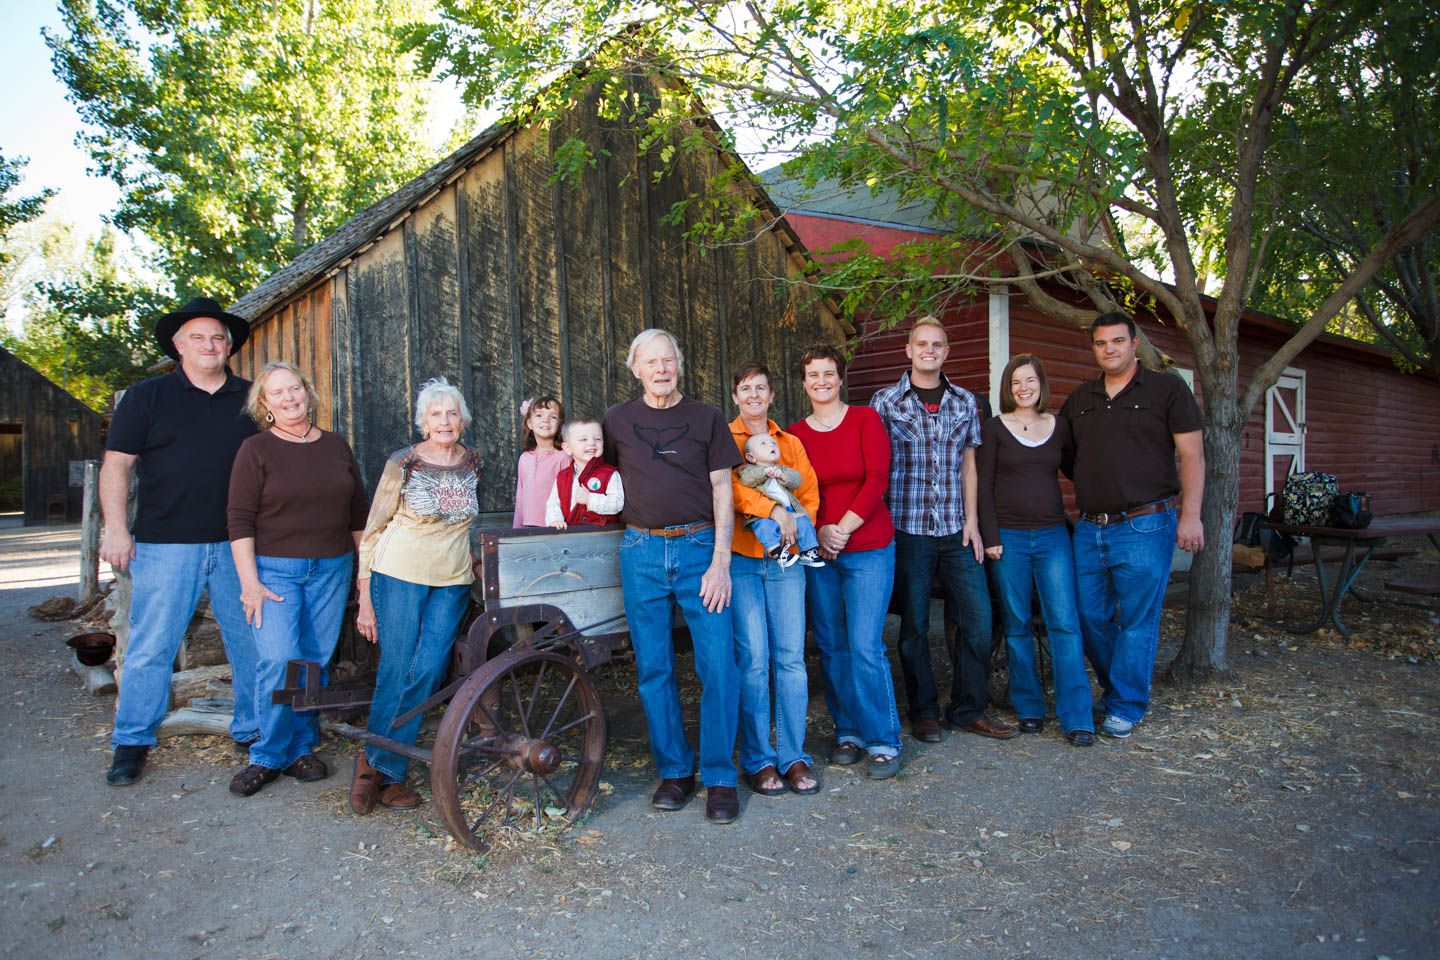 Family photography are different locations on the farm